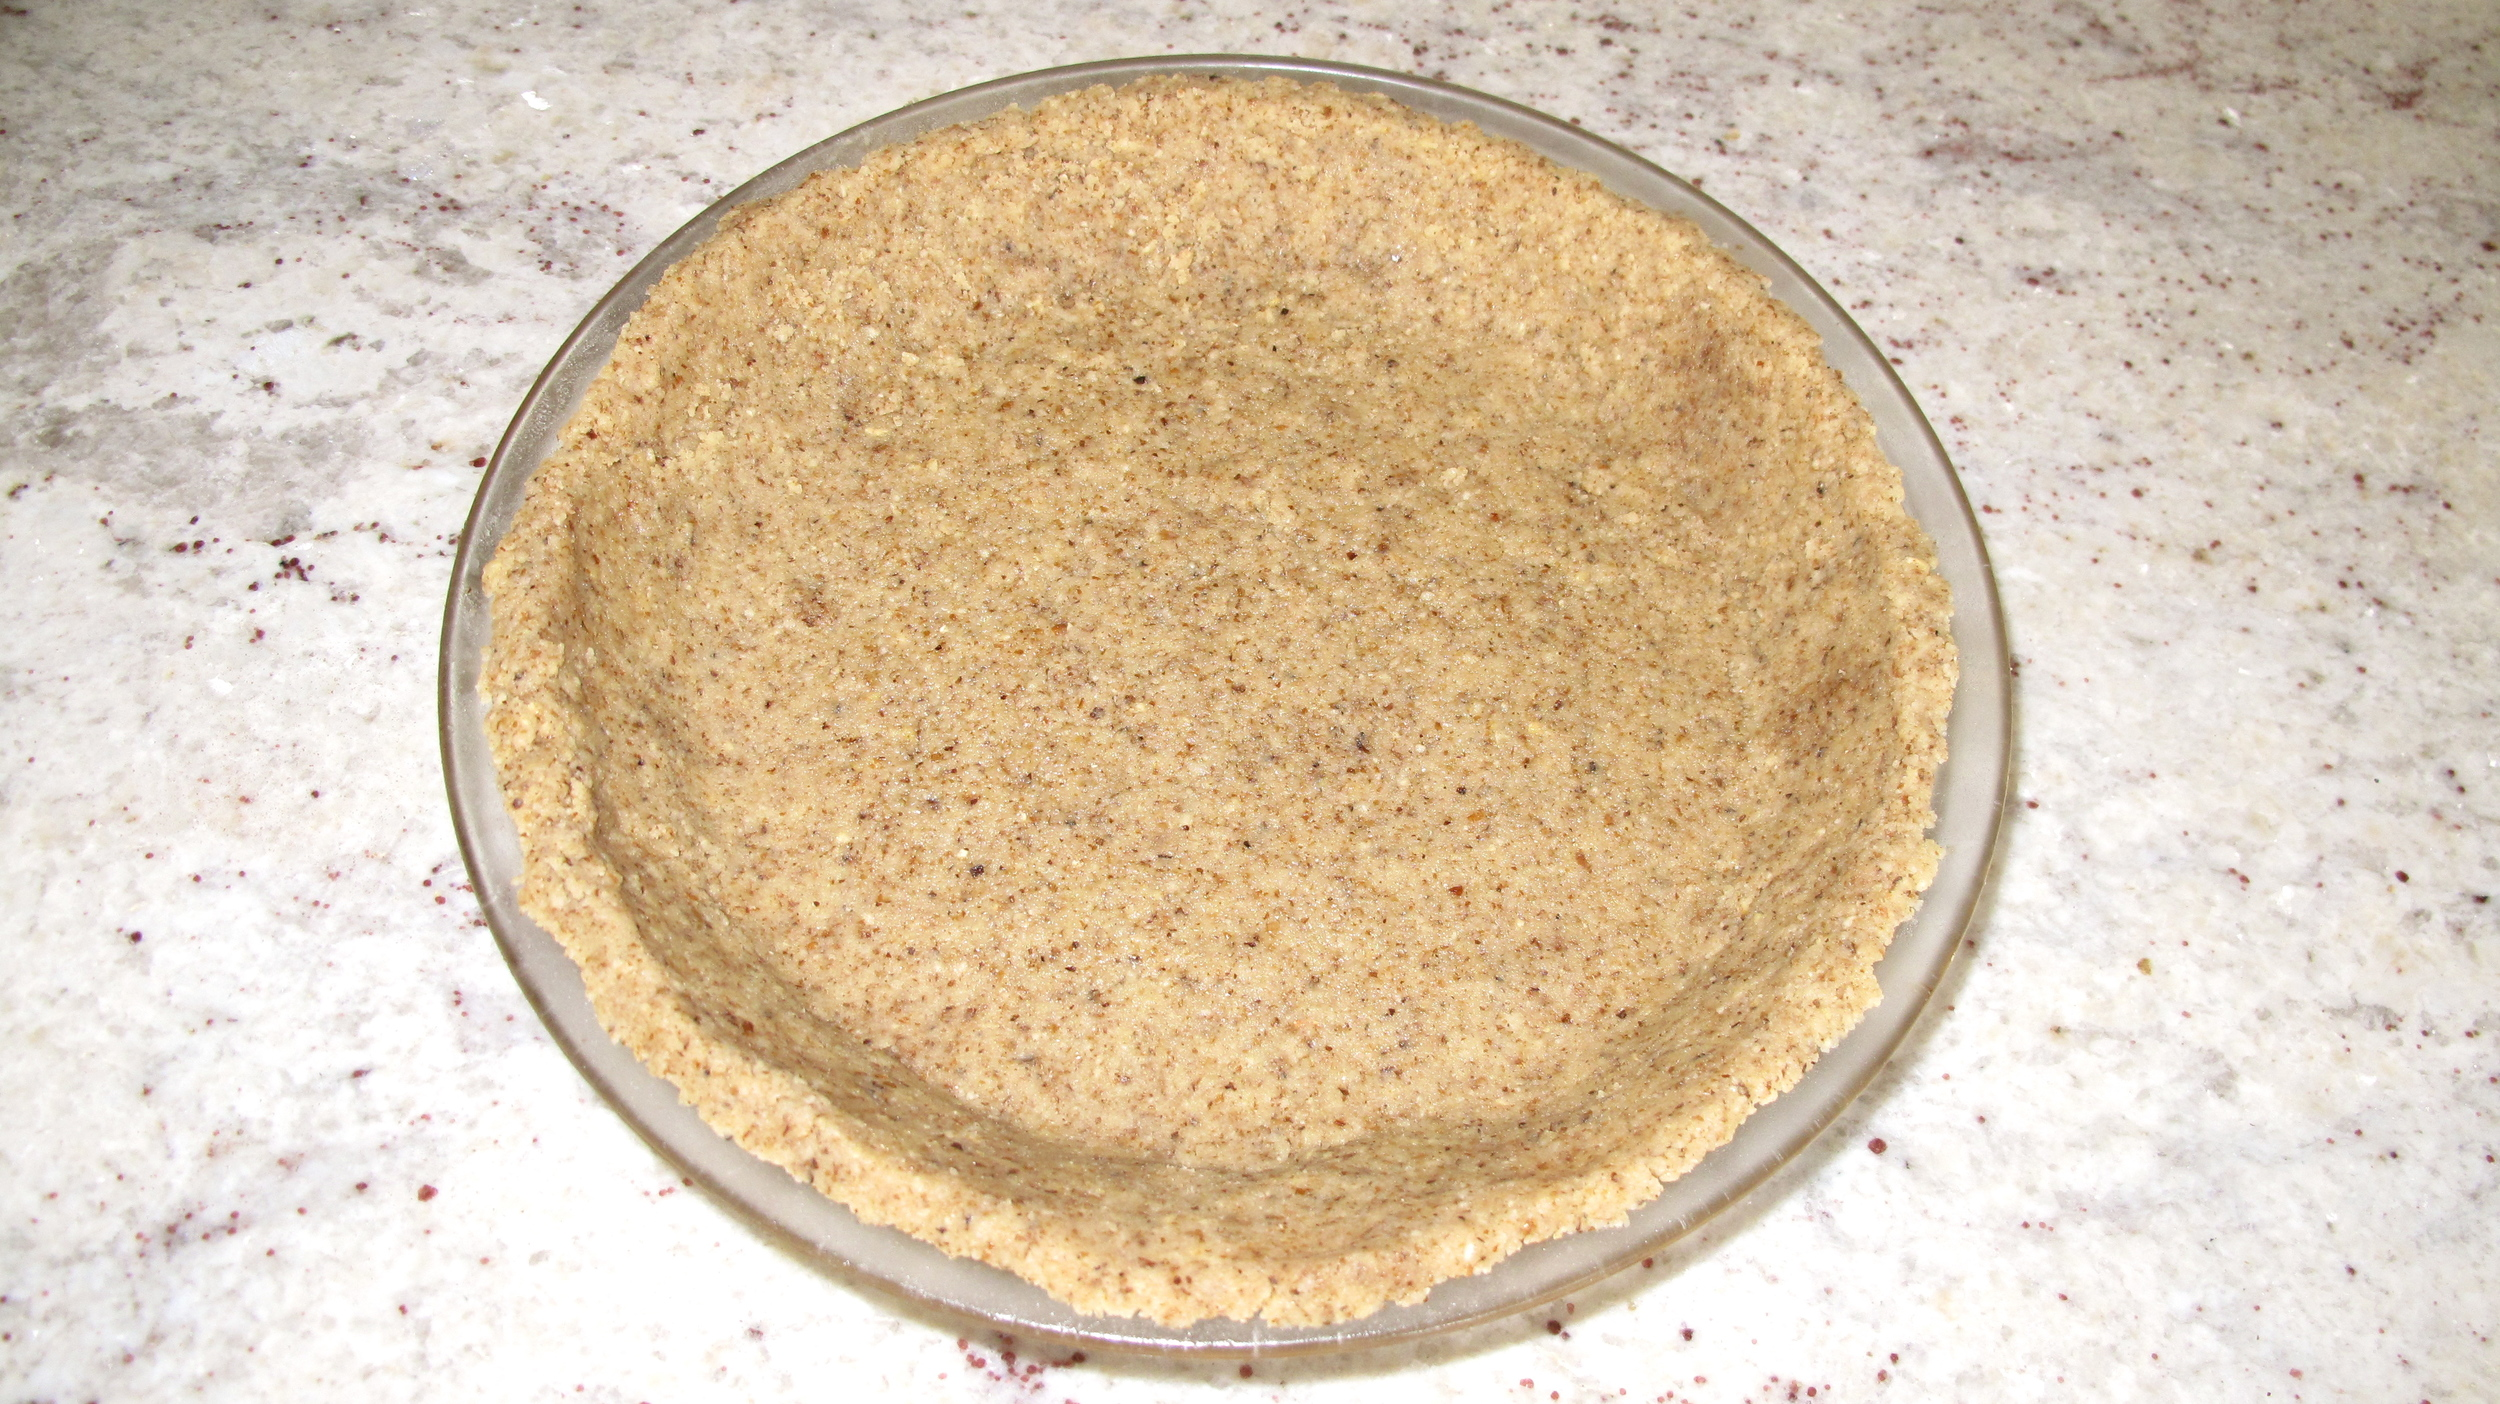 This is a great pie crust for those who have eliminated gluten and/or grains from their diet.